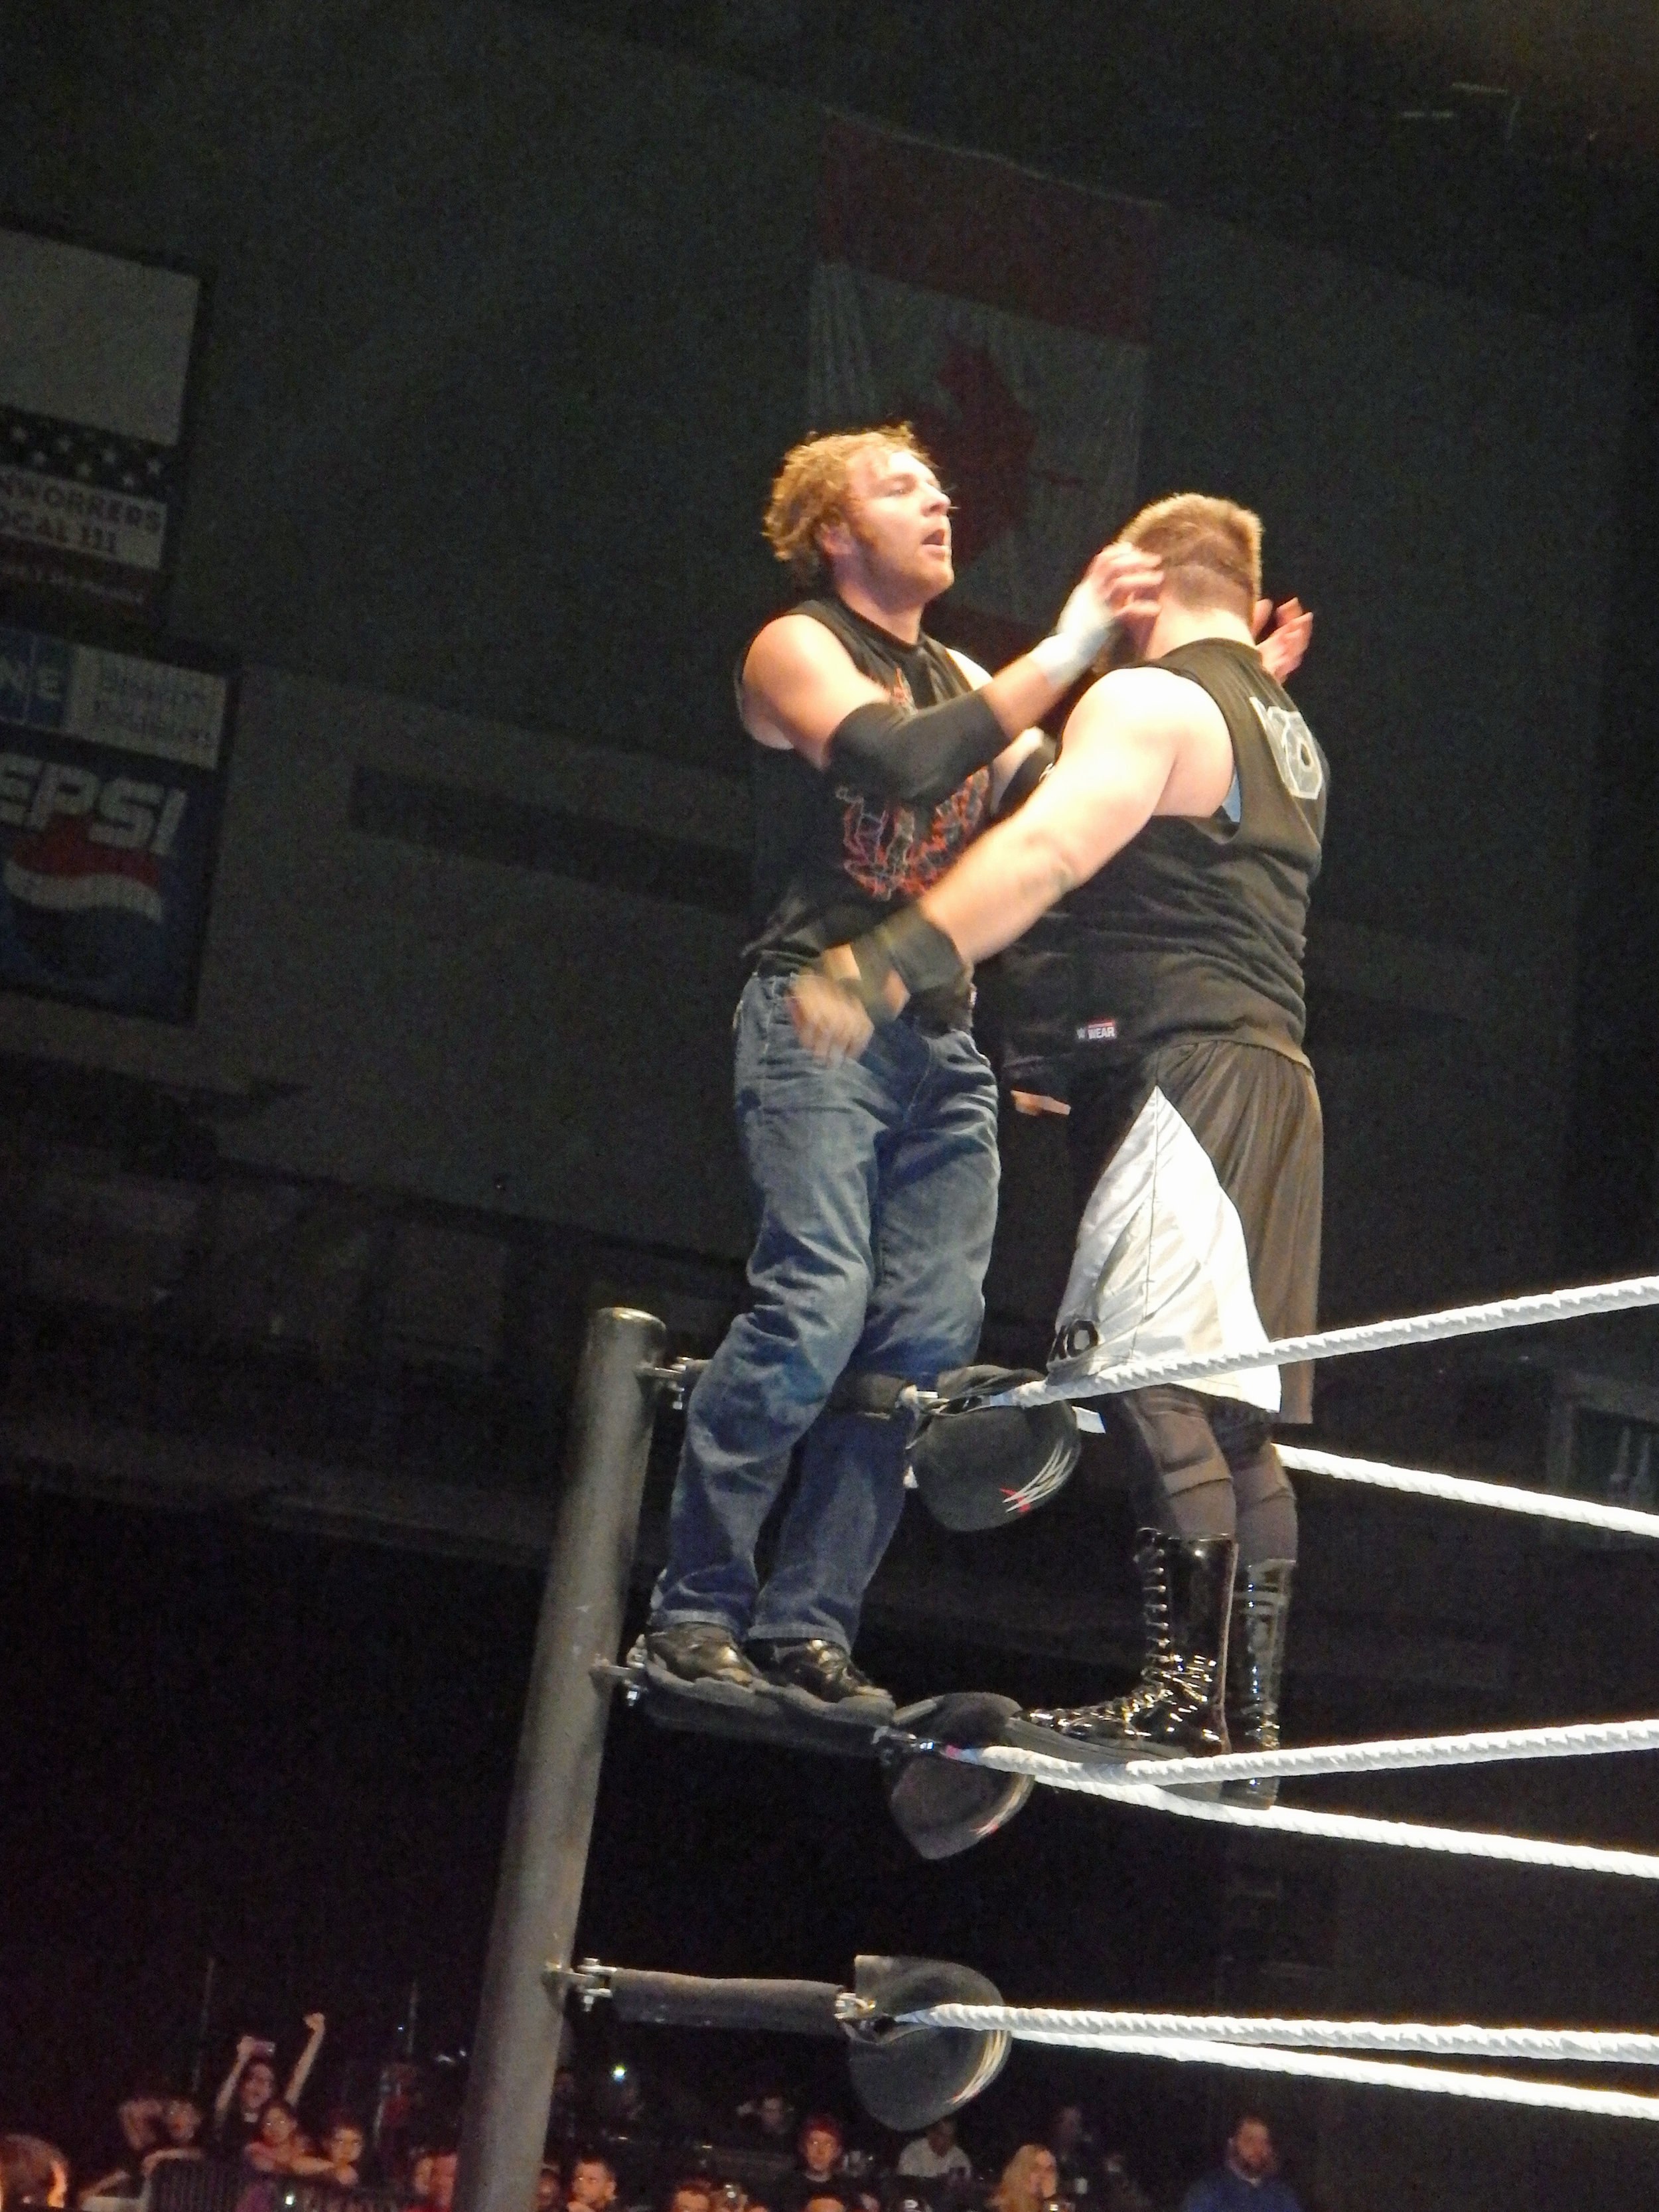 Dean Ambrose, left, stands on the second rope in the corner in a match against Kevin Owens at a WWE live event in Moline, Ill. on March 6, 2016. (Photo by Mike Pankow)